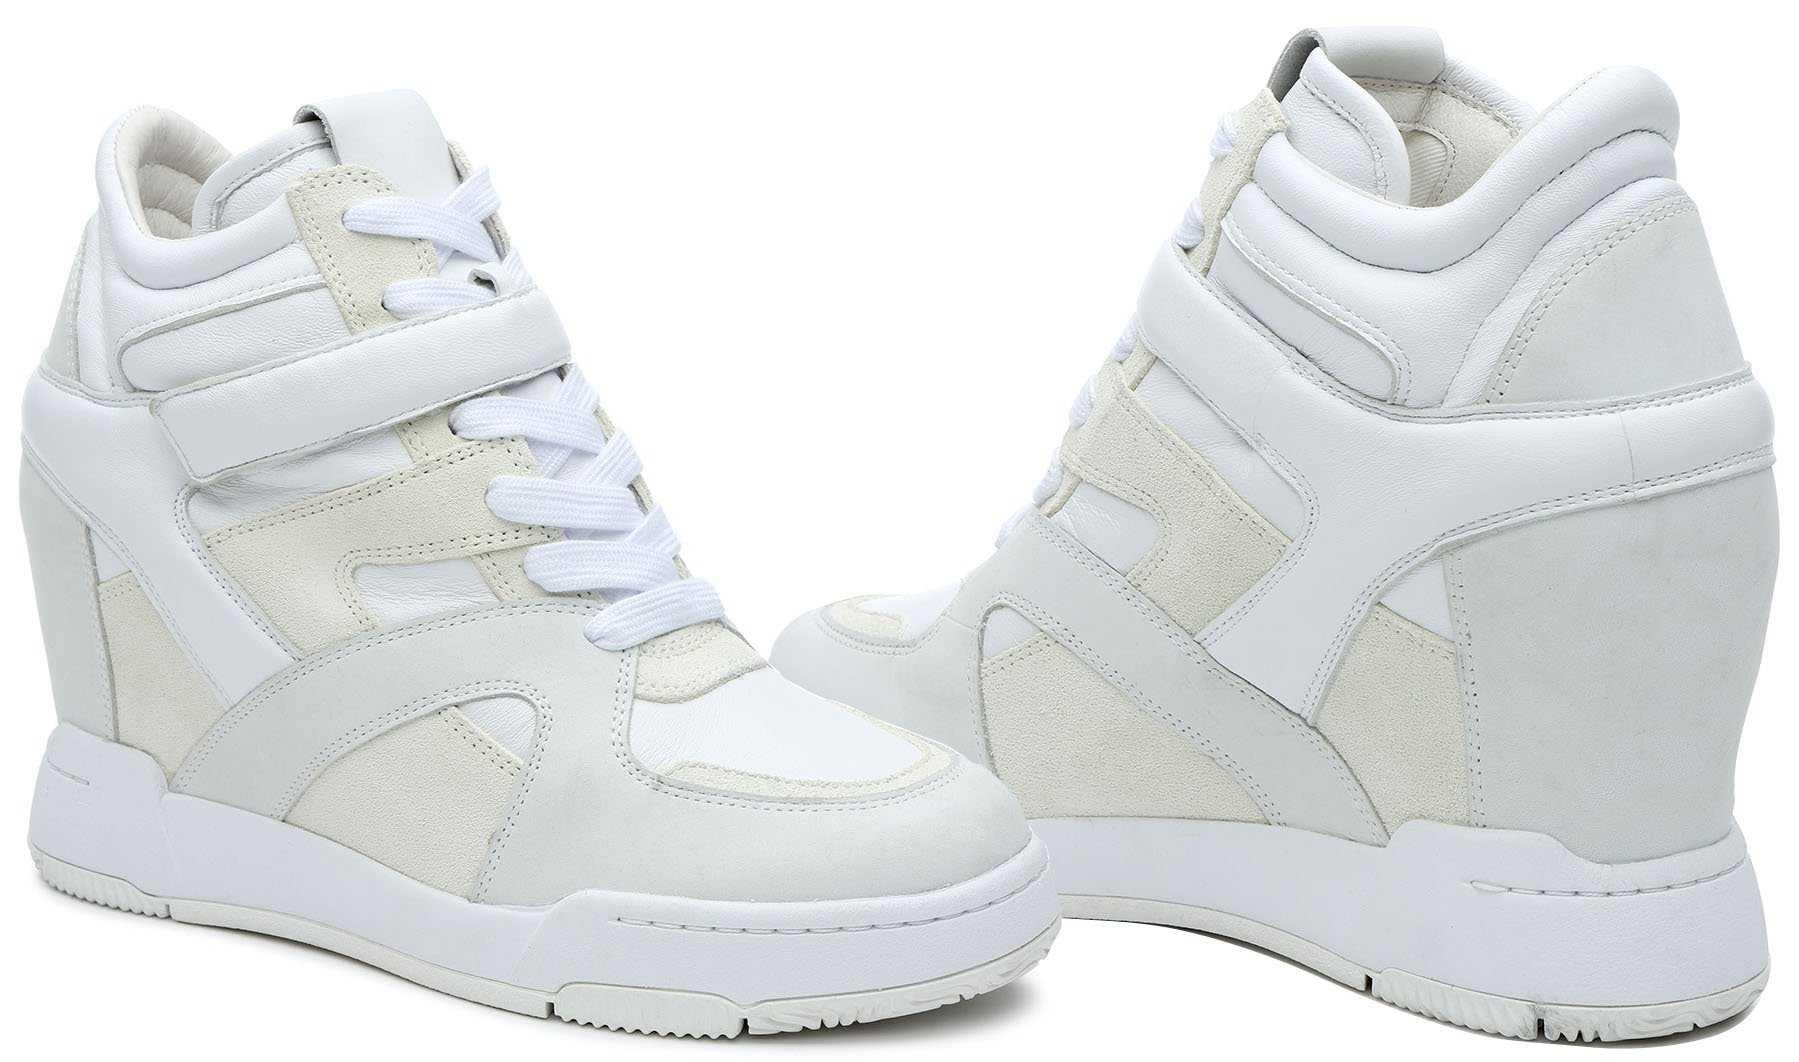 Give off cool-girl vibe with '90s-style wedge sneakers